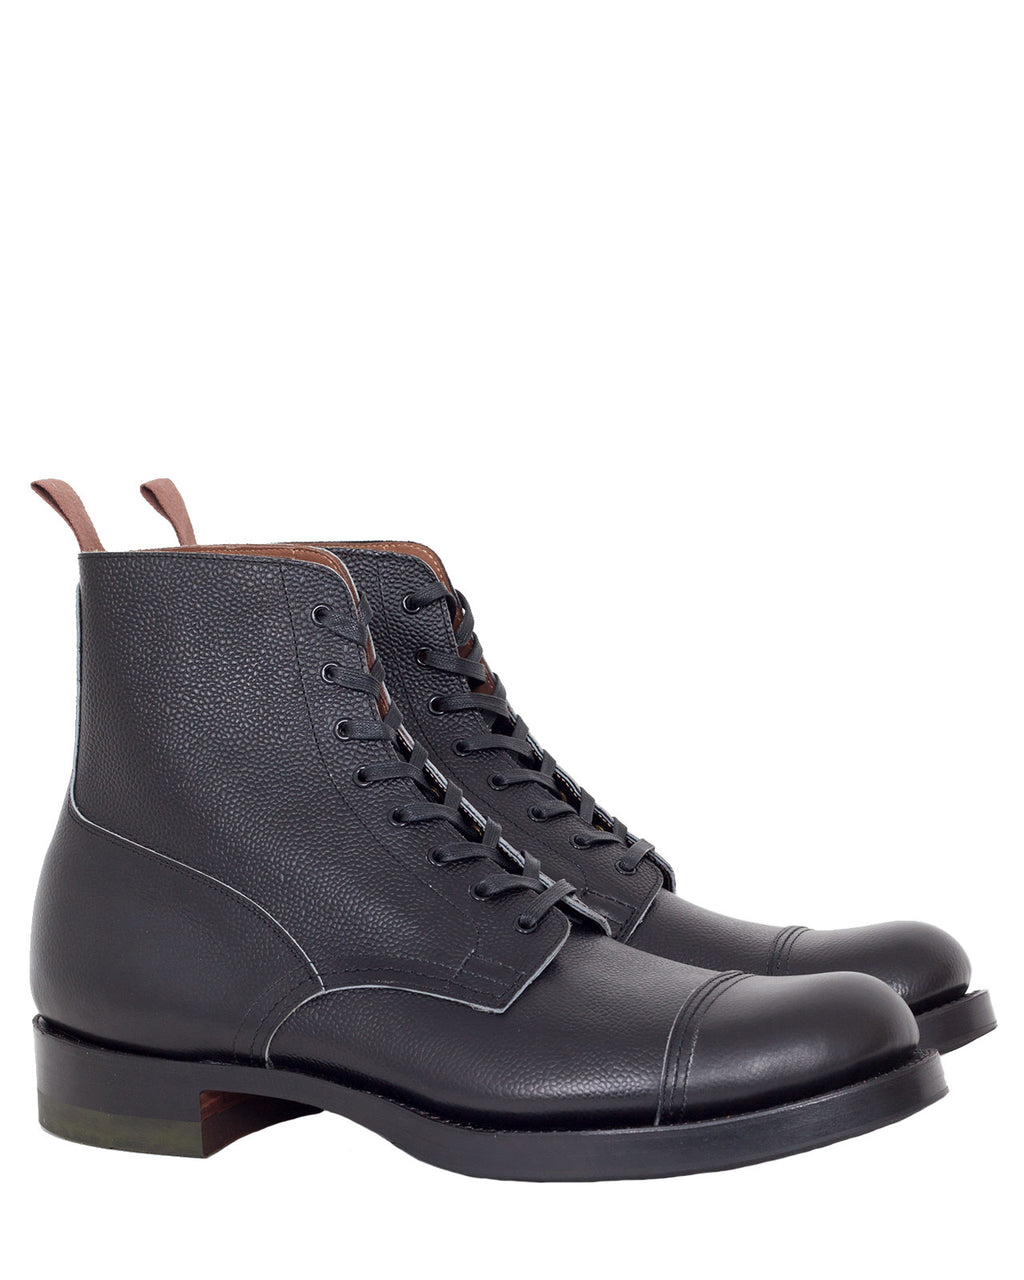 Clinch Graham Boots, MR Last, Black